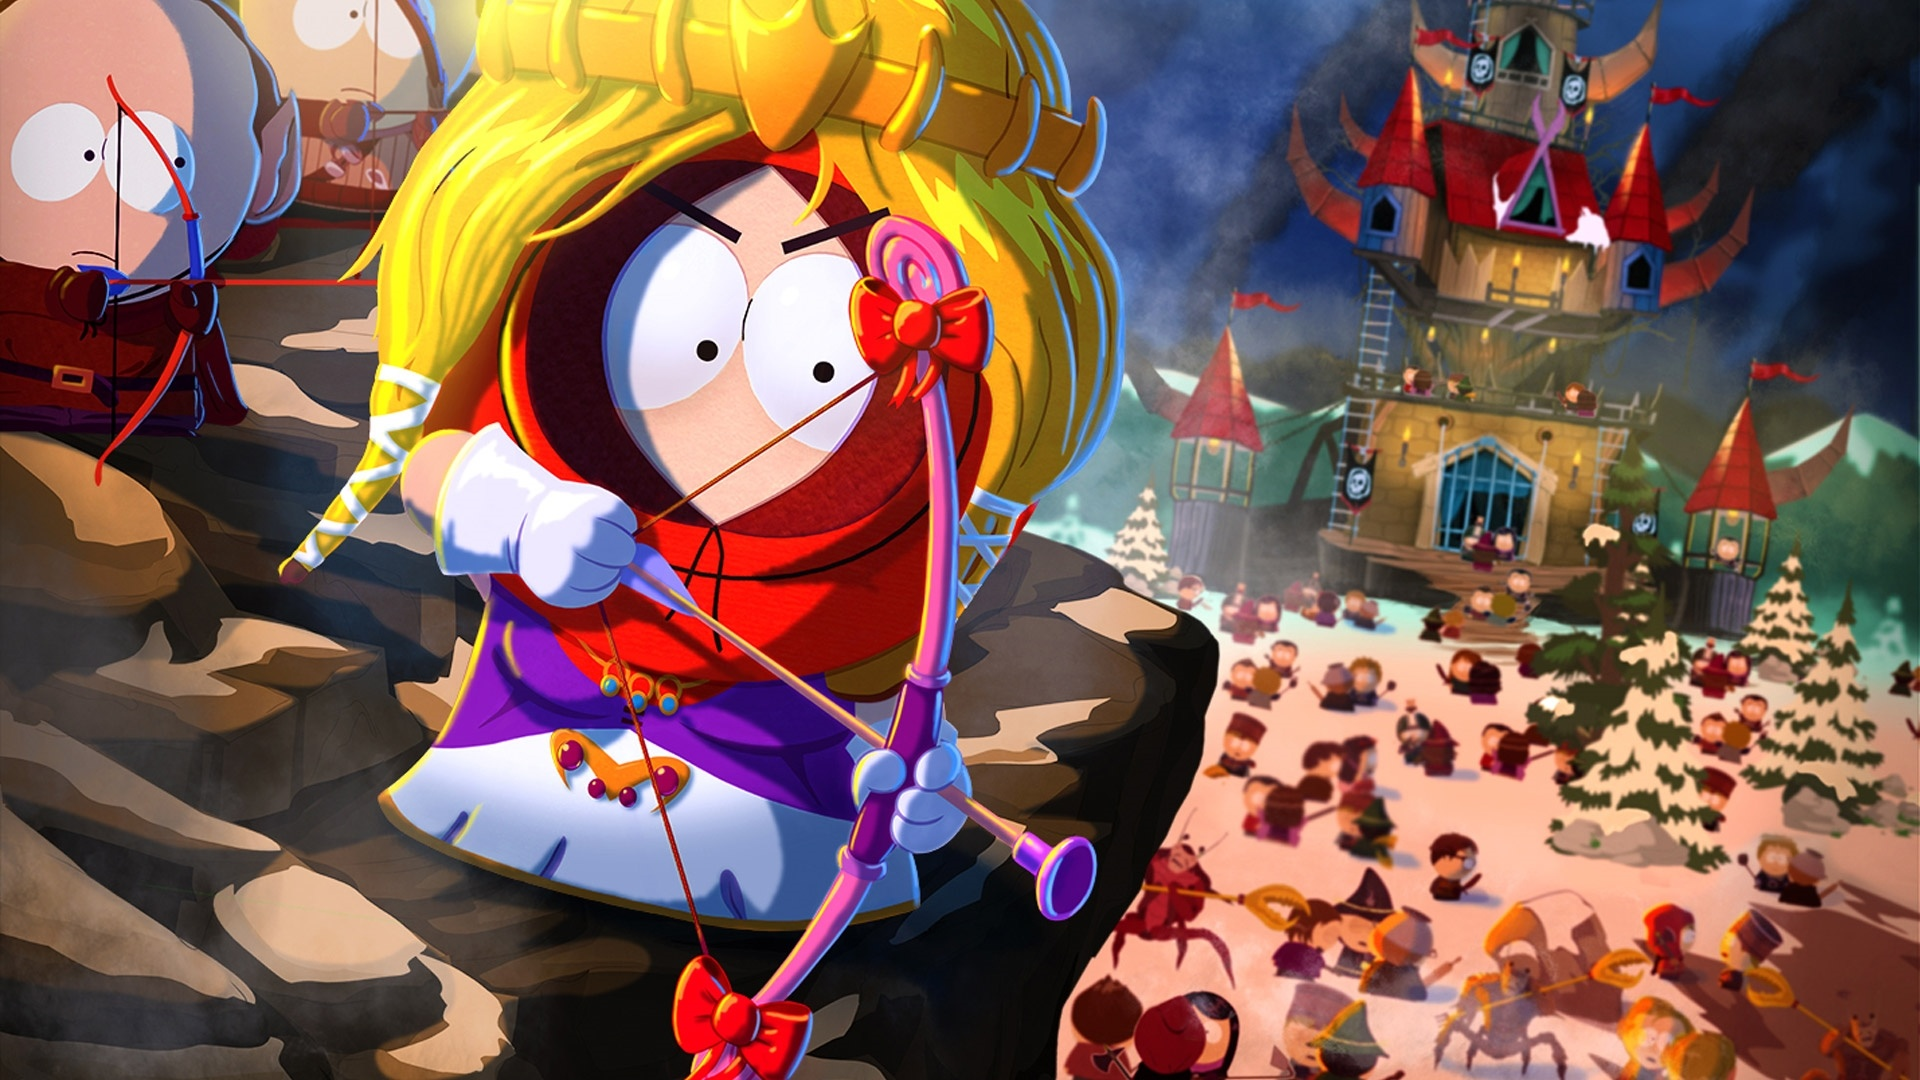 South Park background picture